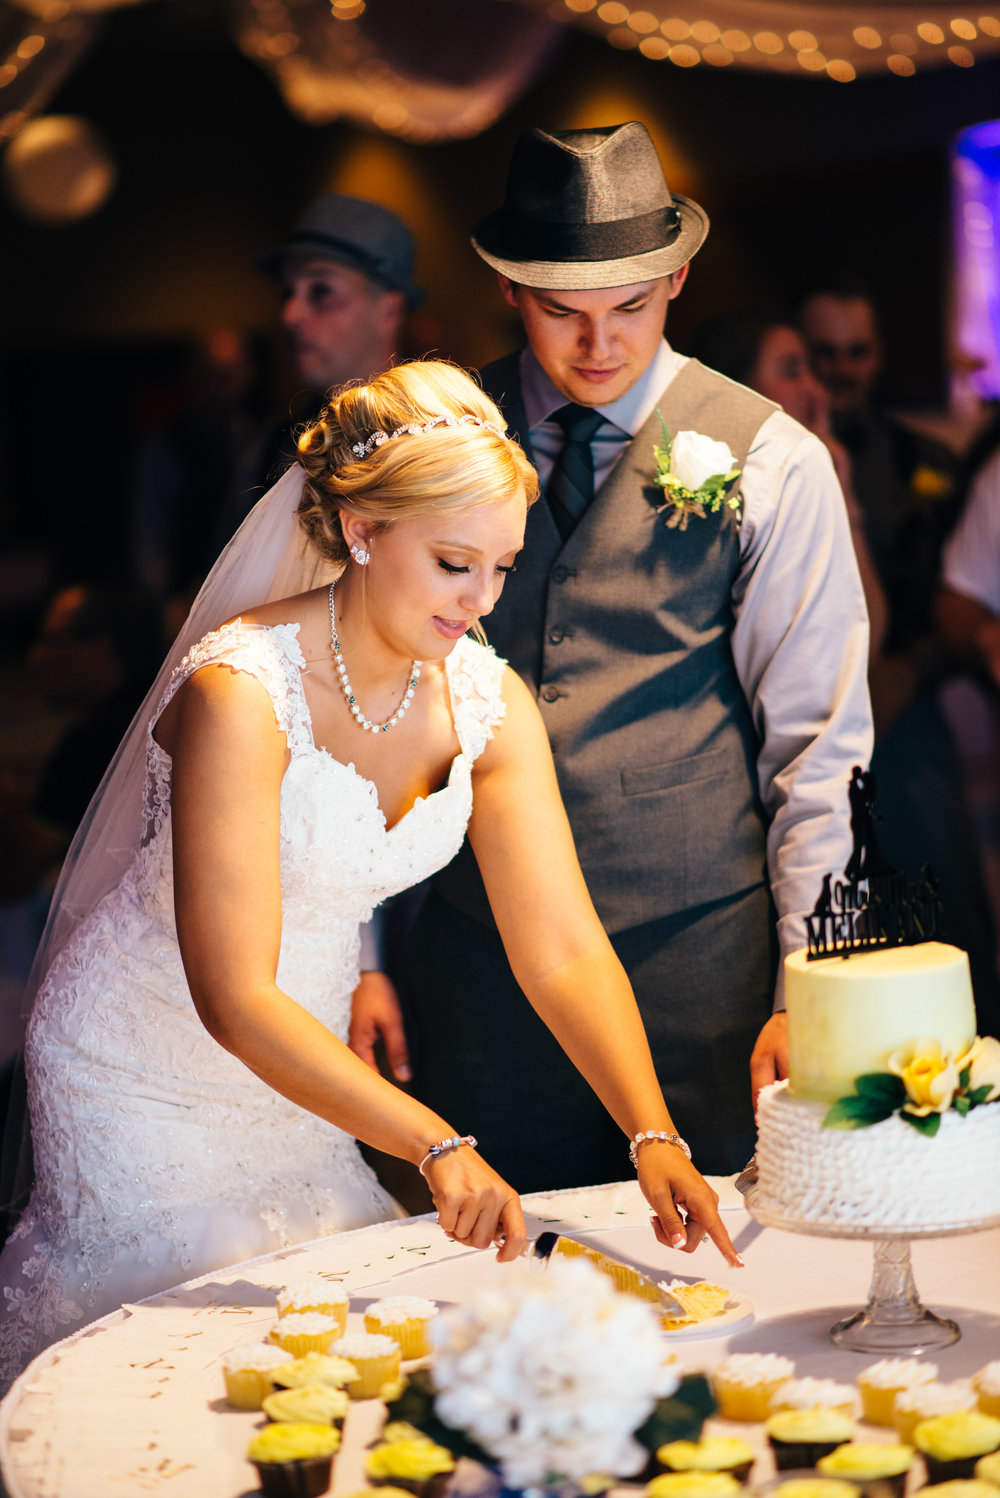 Bride and groom cutting cake at Carrolltown Fire Co. Banquet Hall